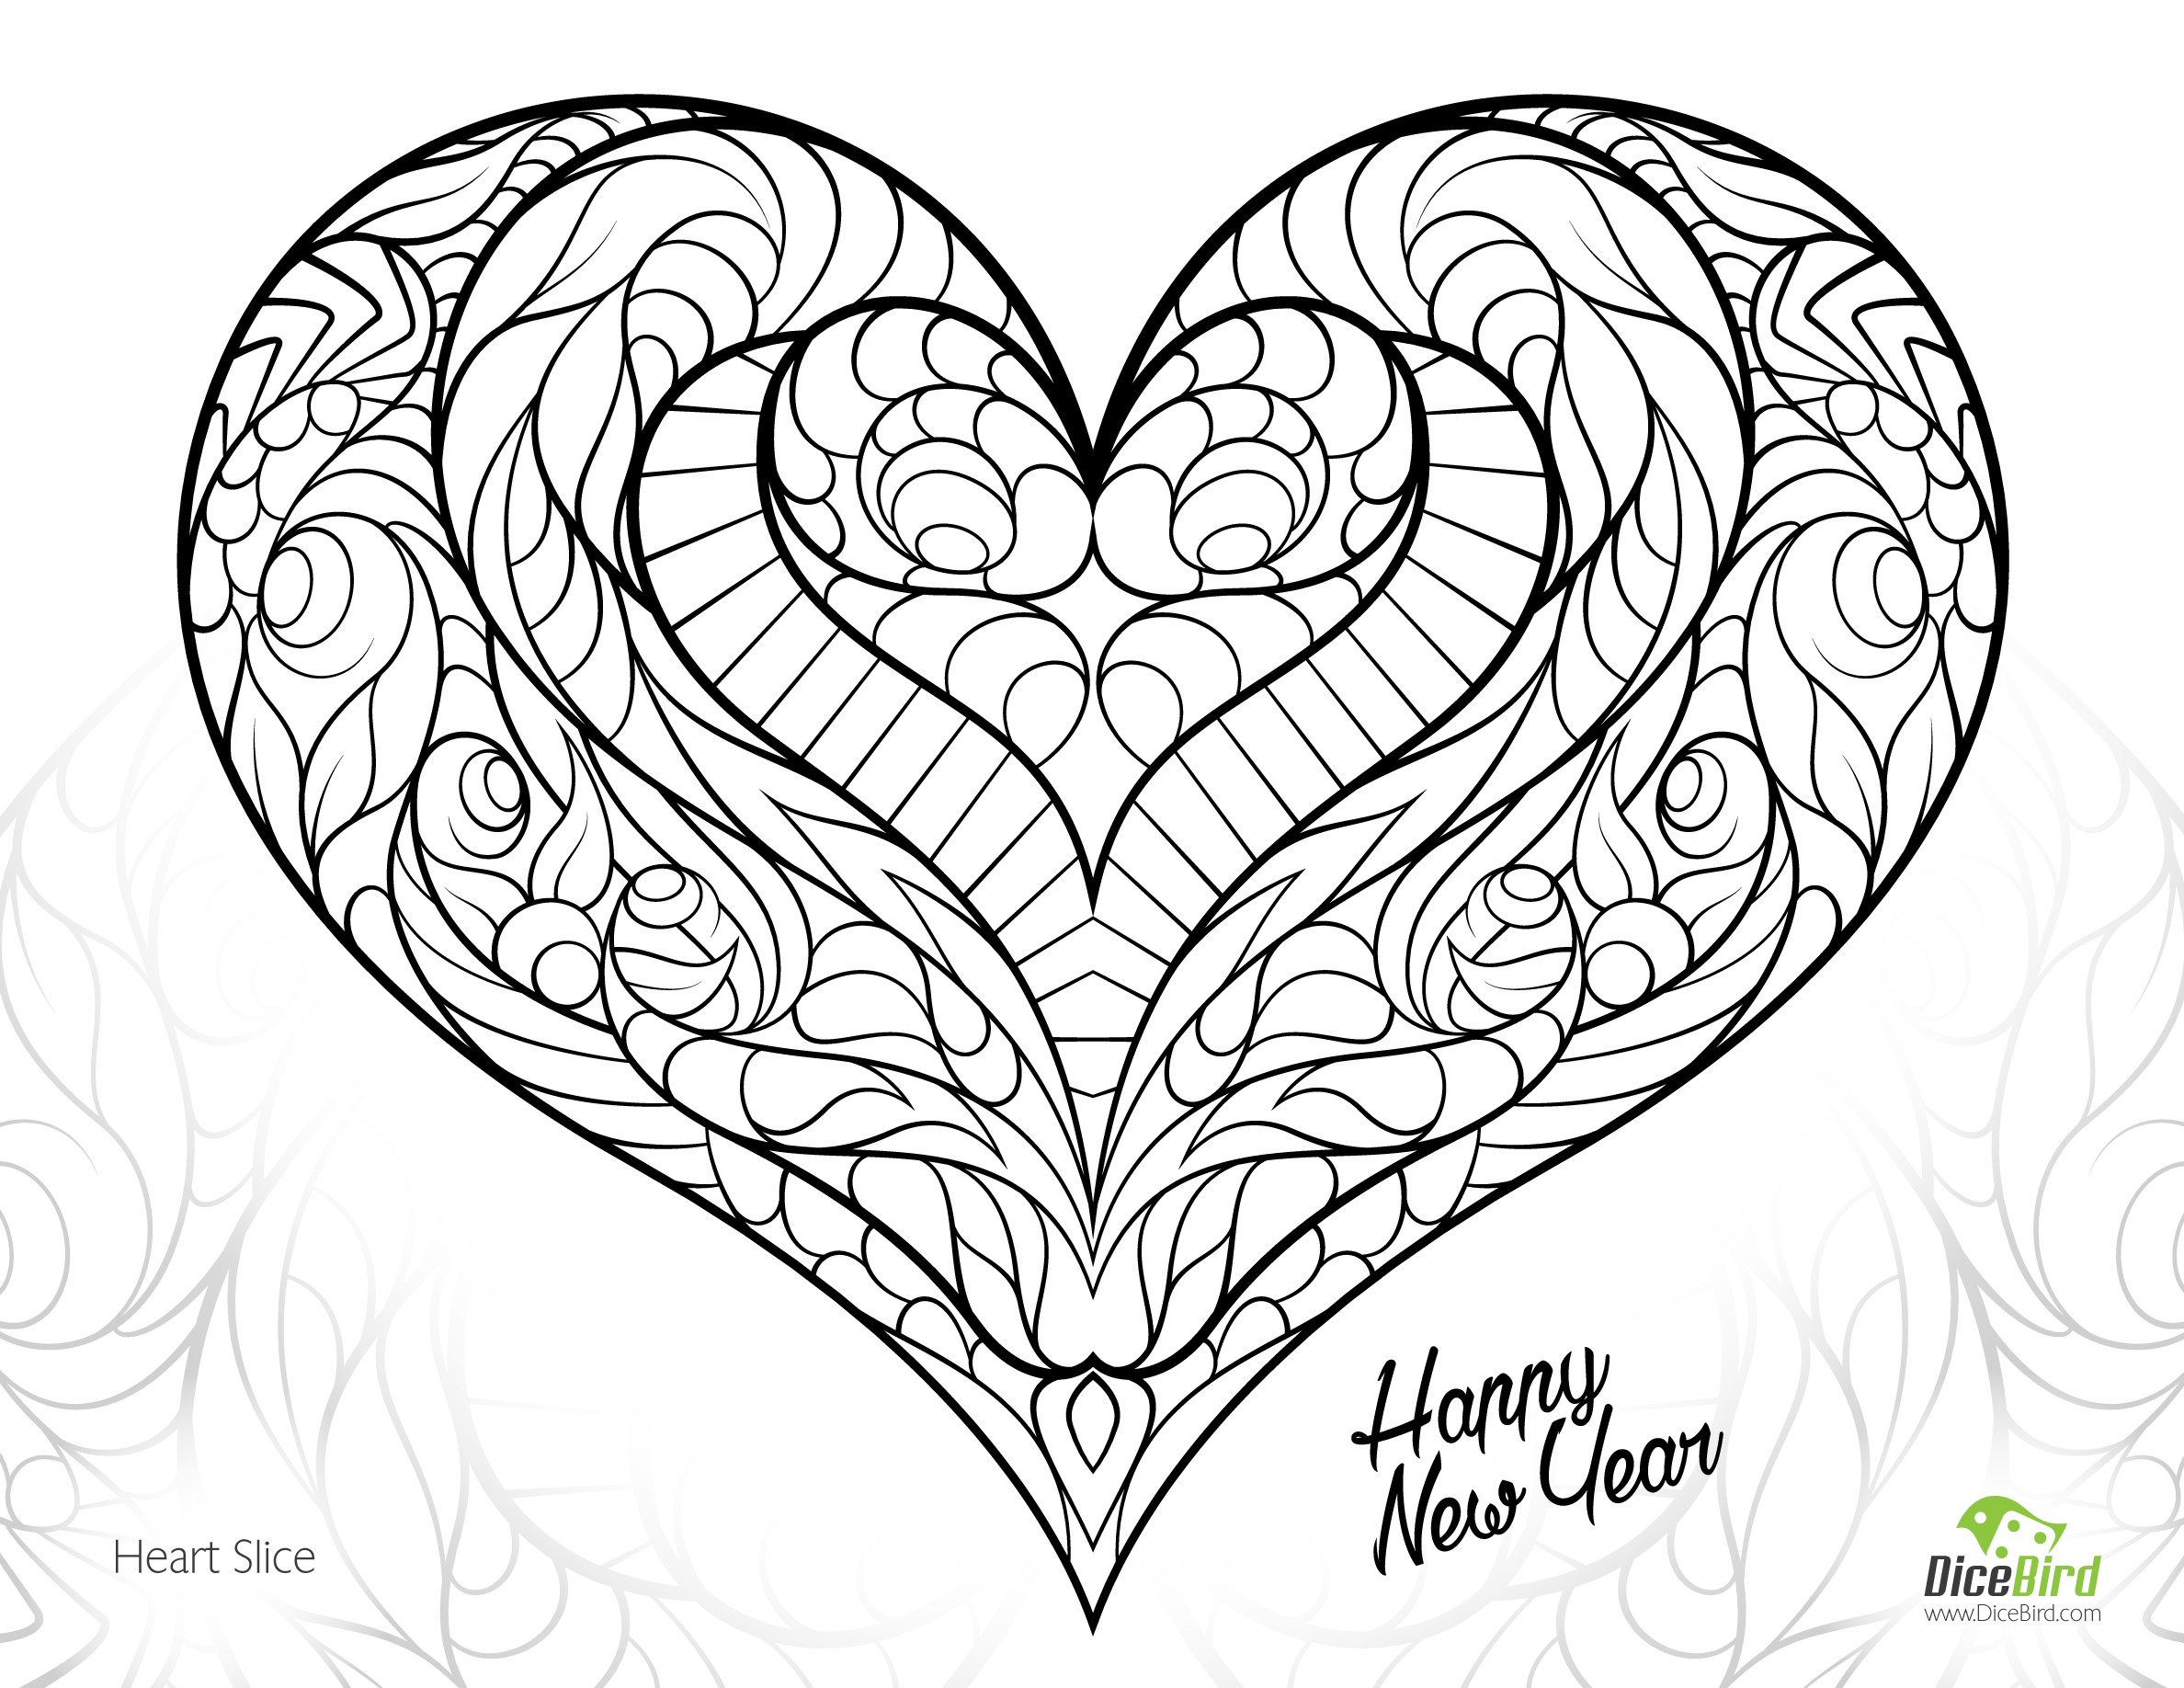 2376x1836 Hearts Coloring Pages Beautiful Free Heart Coloring Pages Rawesome